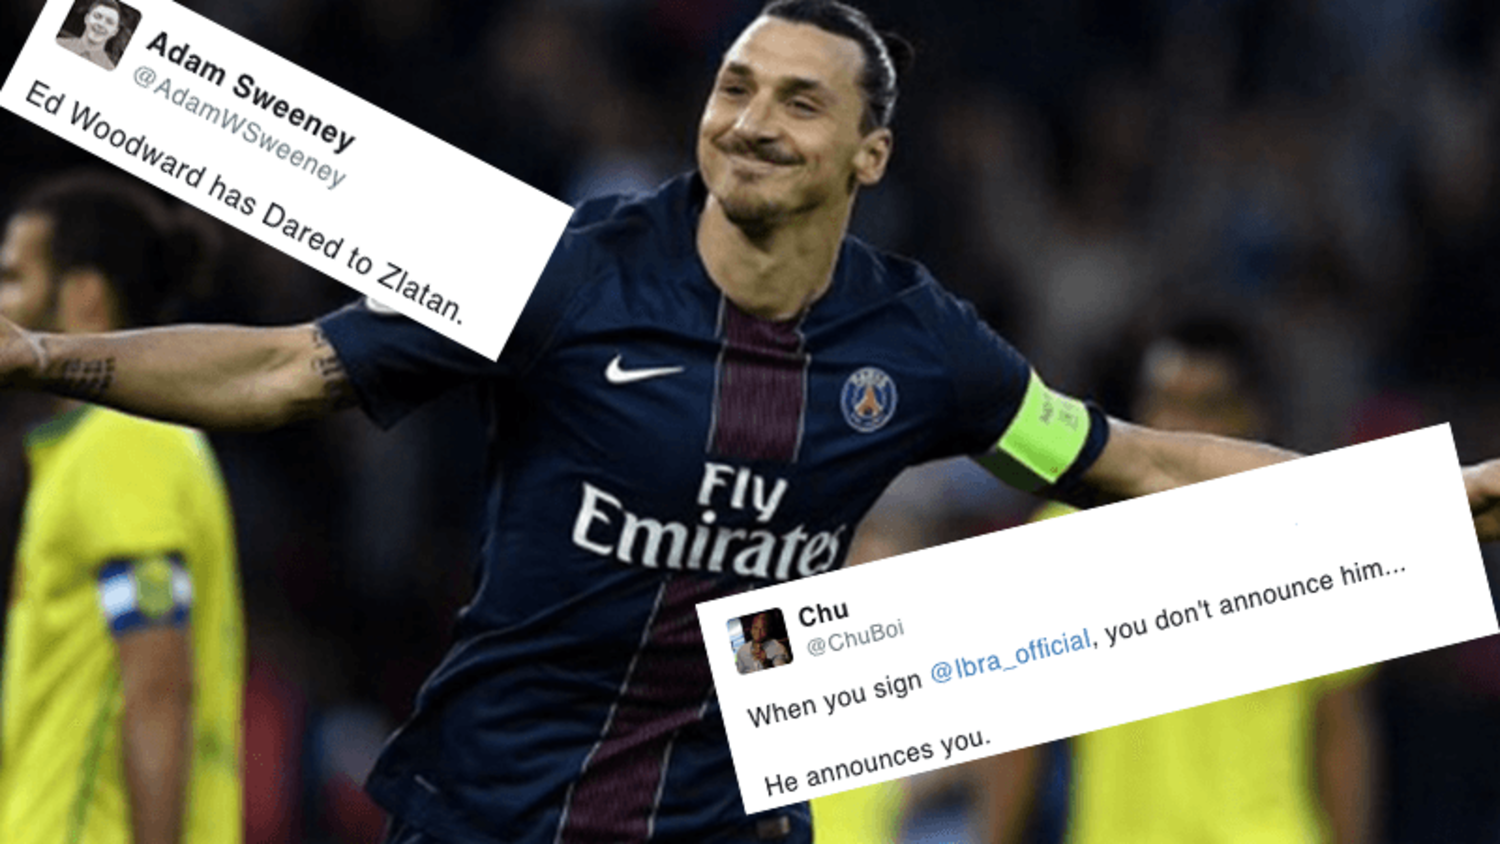 Best reactions to Zlatan Ibrahimovic announcing his move to Manchester United